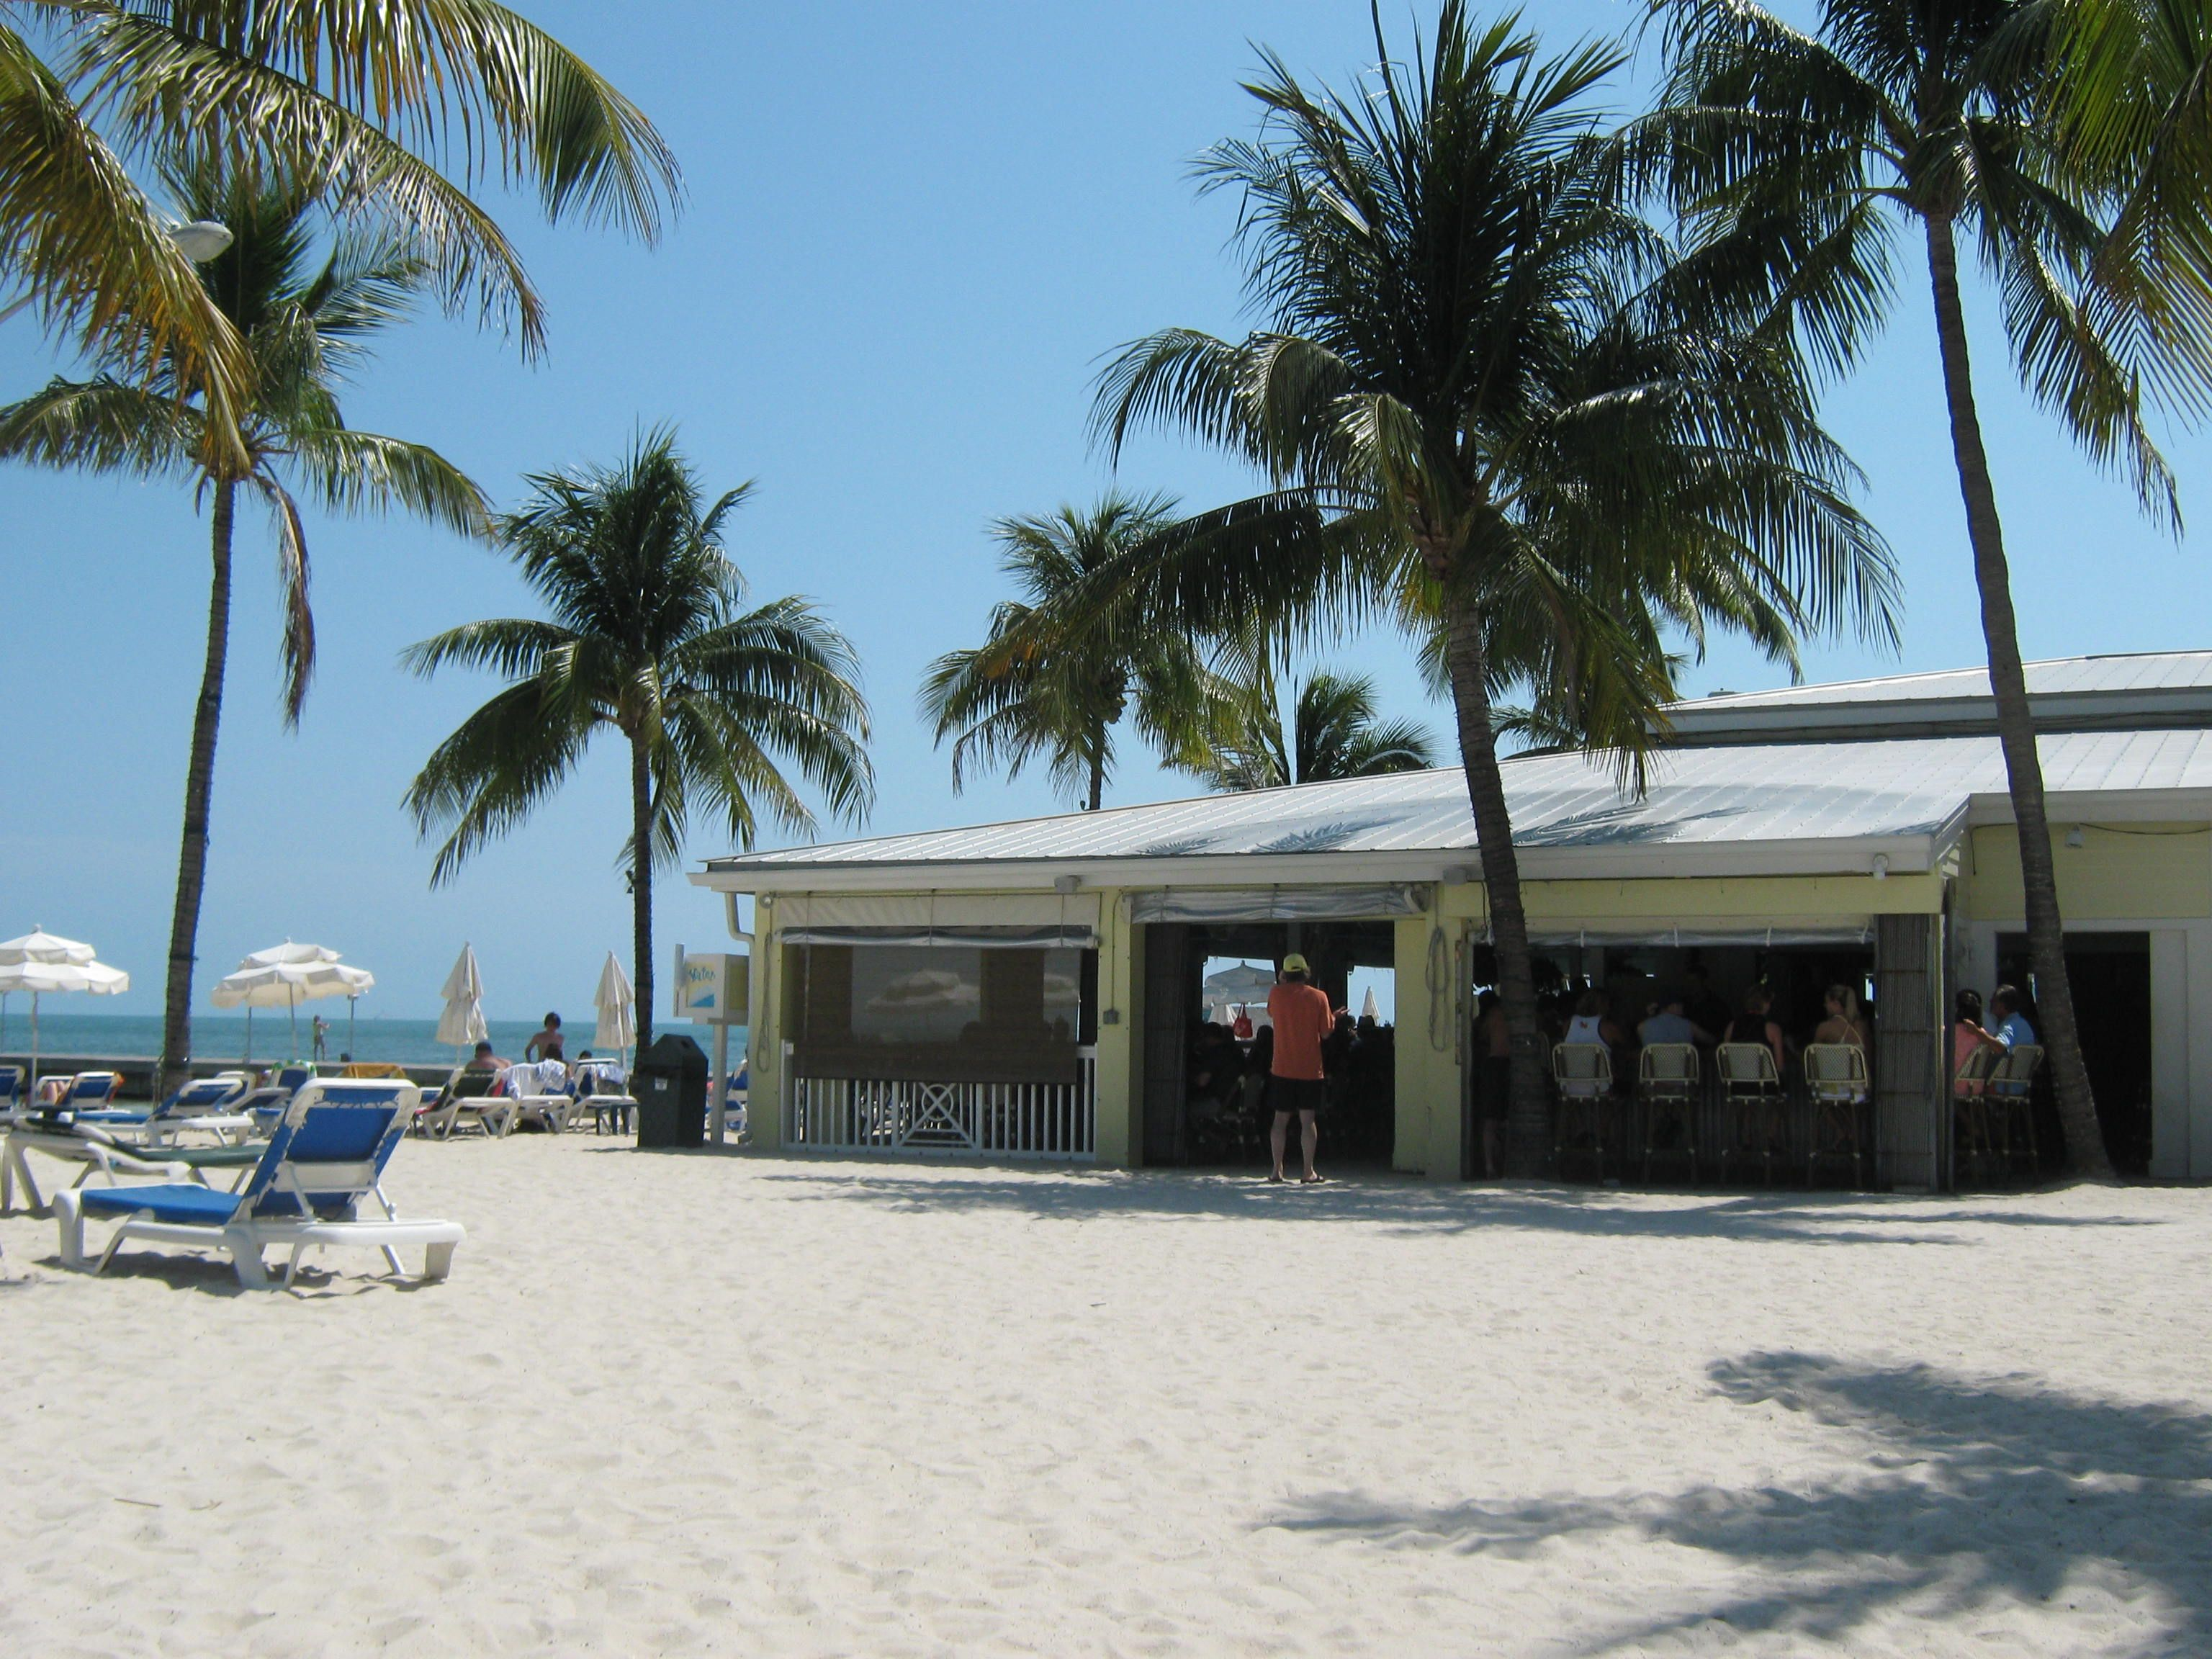 Where the old South Beach Restaurant was Key West,Fl